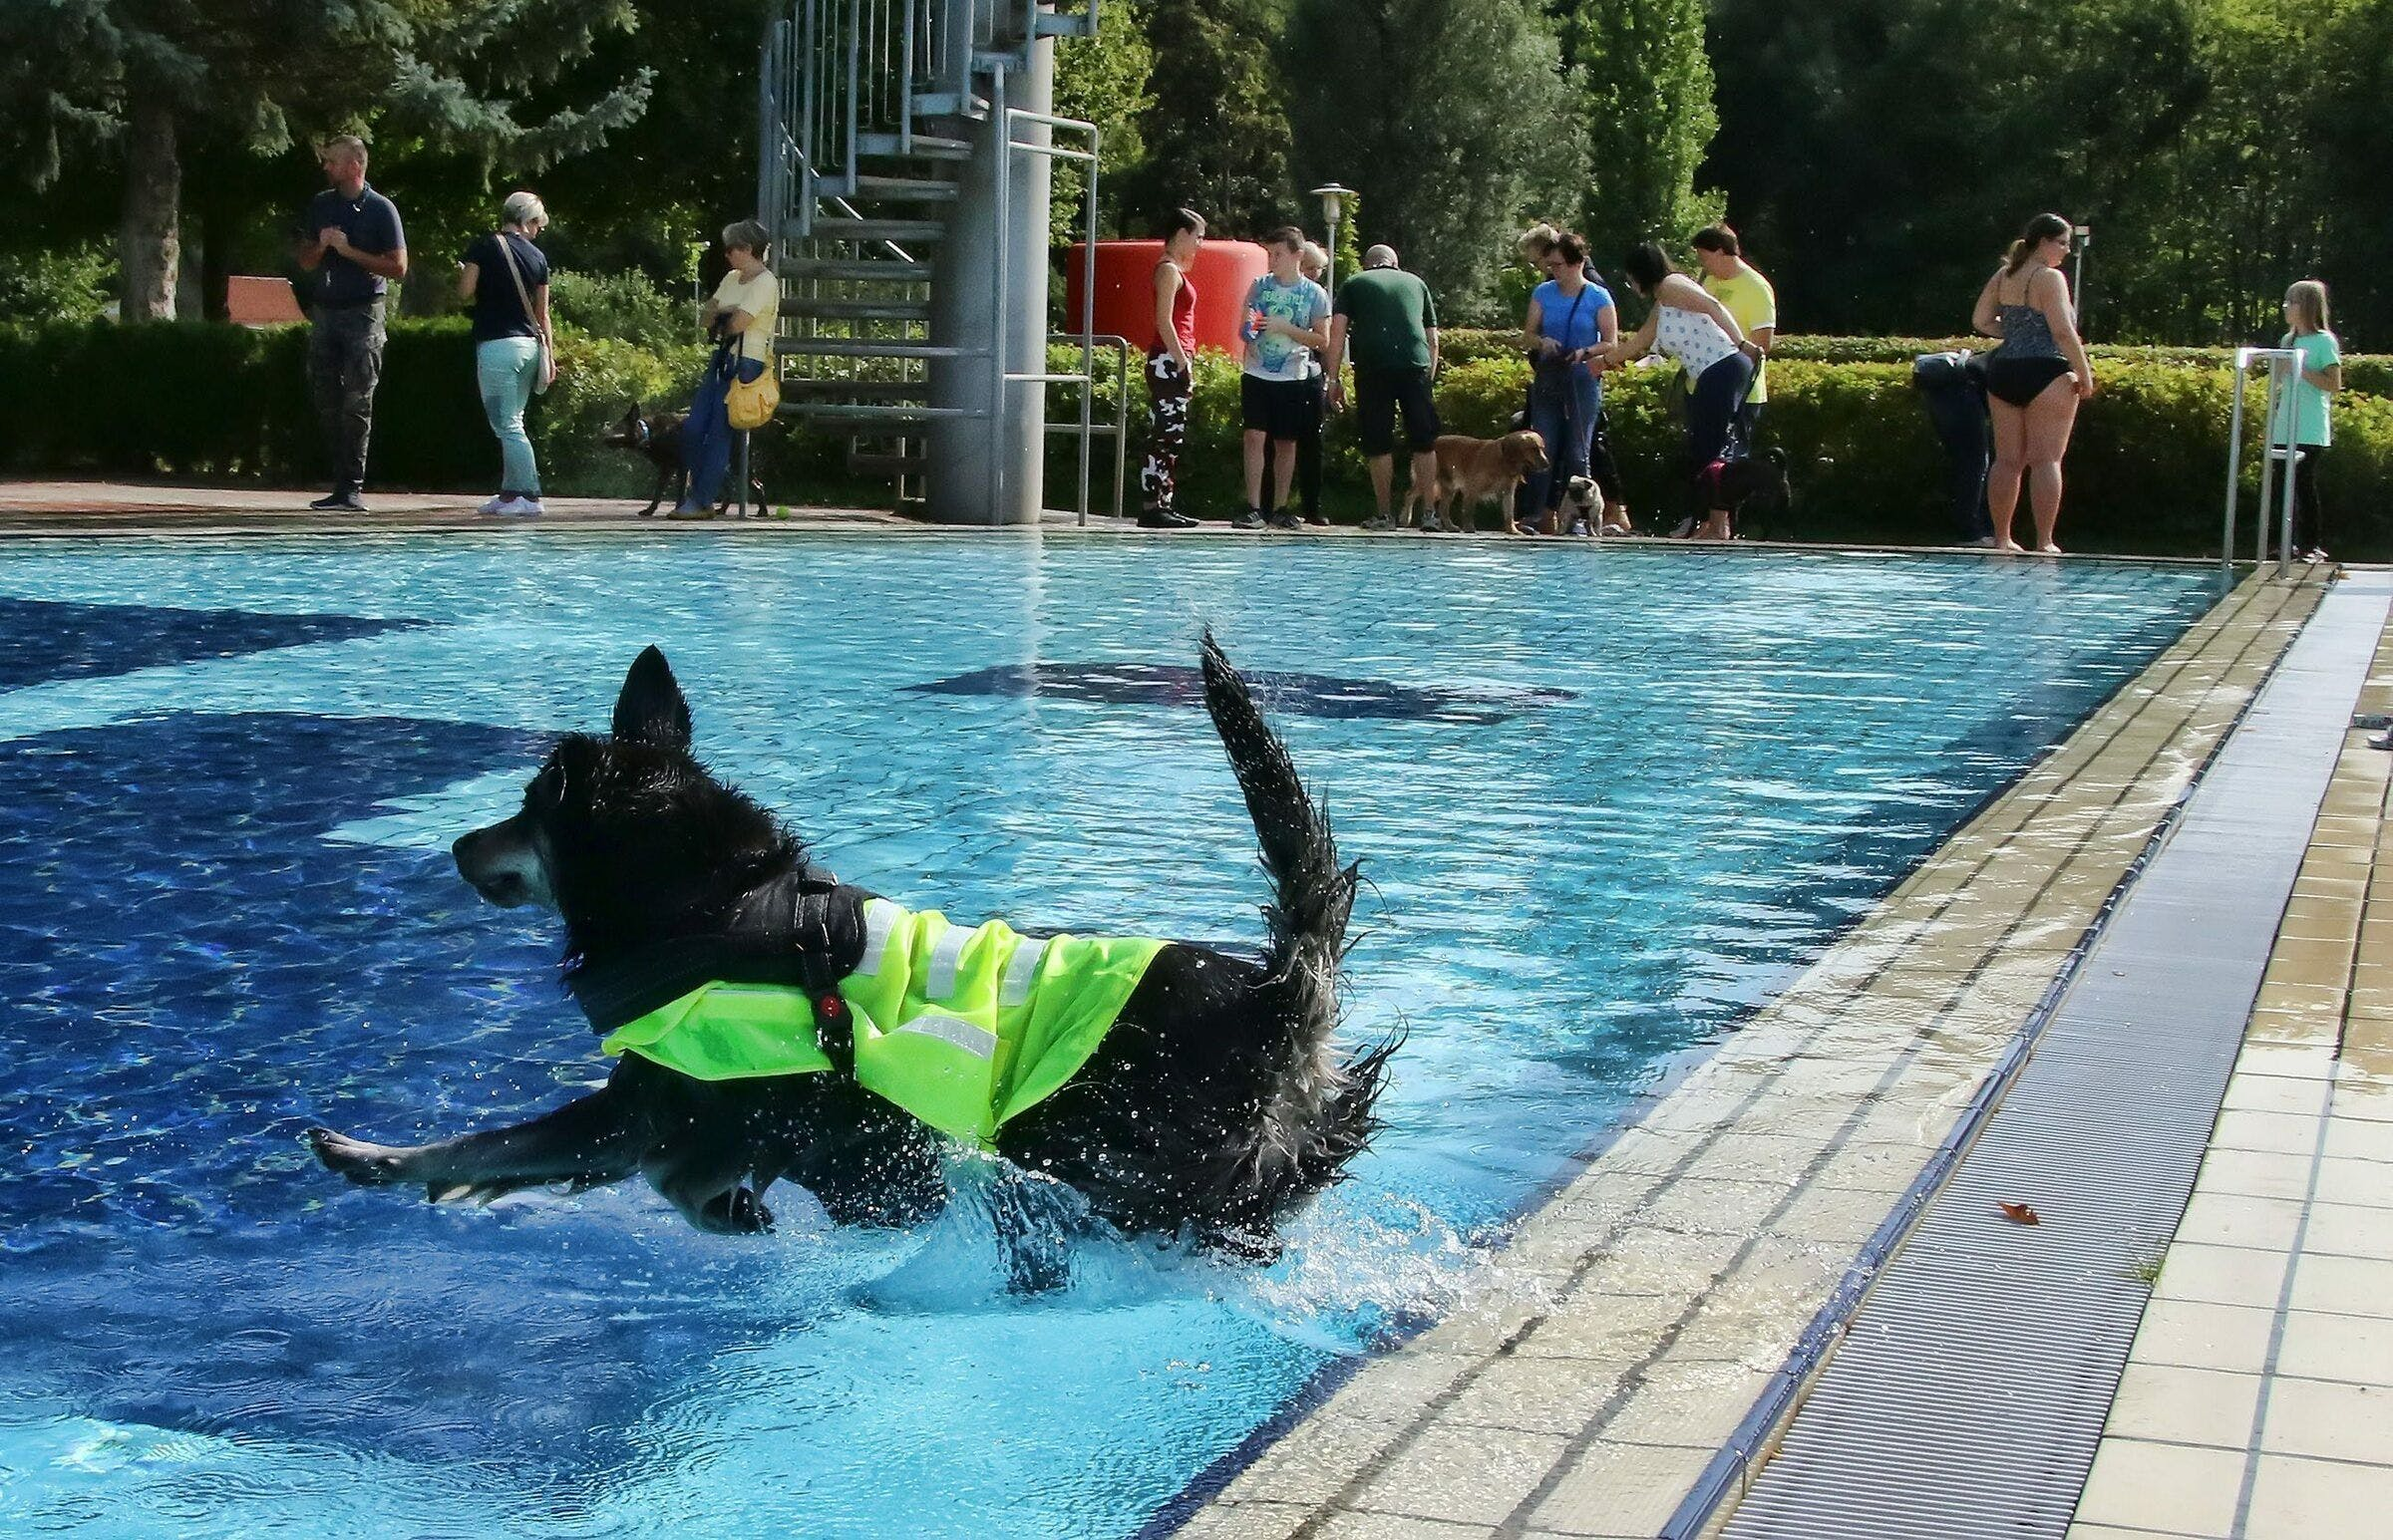 The outdoor pools in the Sangerhäuser region see no need to spend a day bathing the dogs